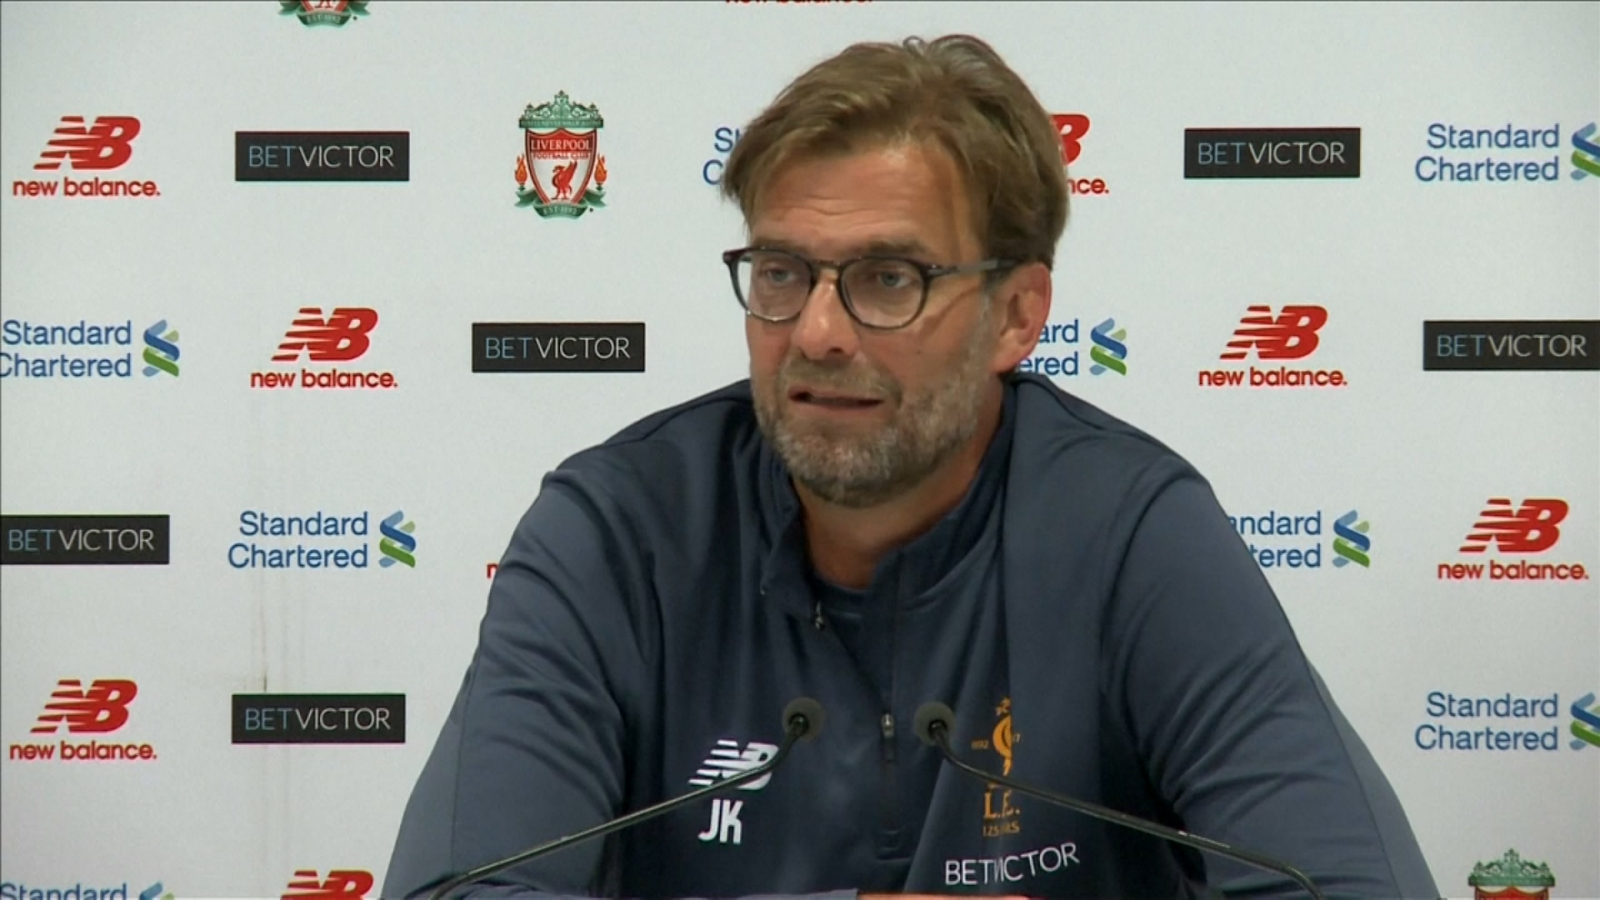 jurgen-klopp-liverpool-should-be-in-the-champions-league-all-the-time